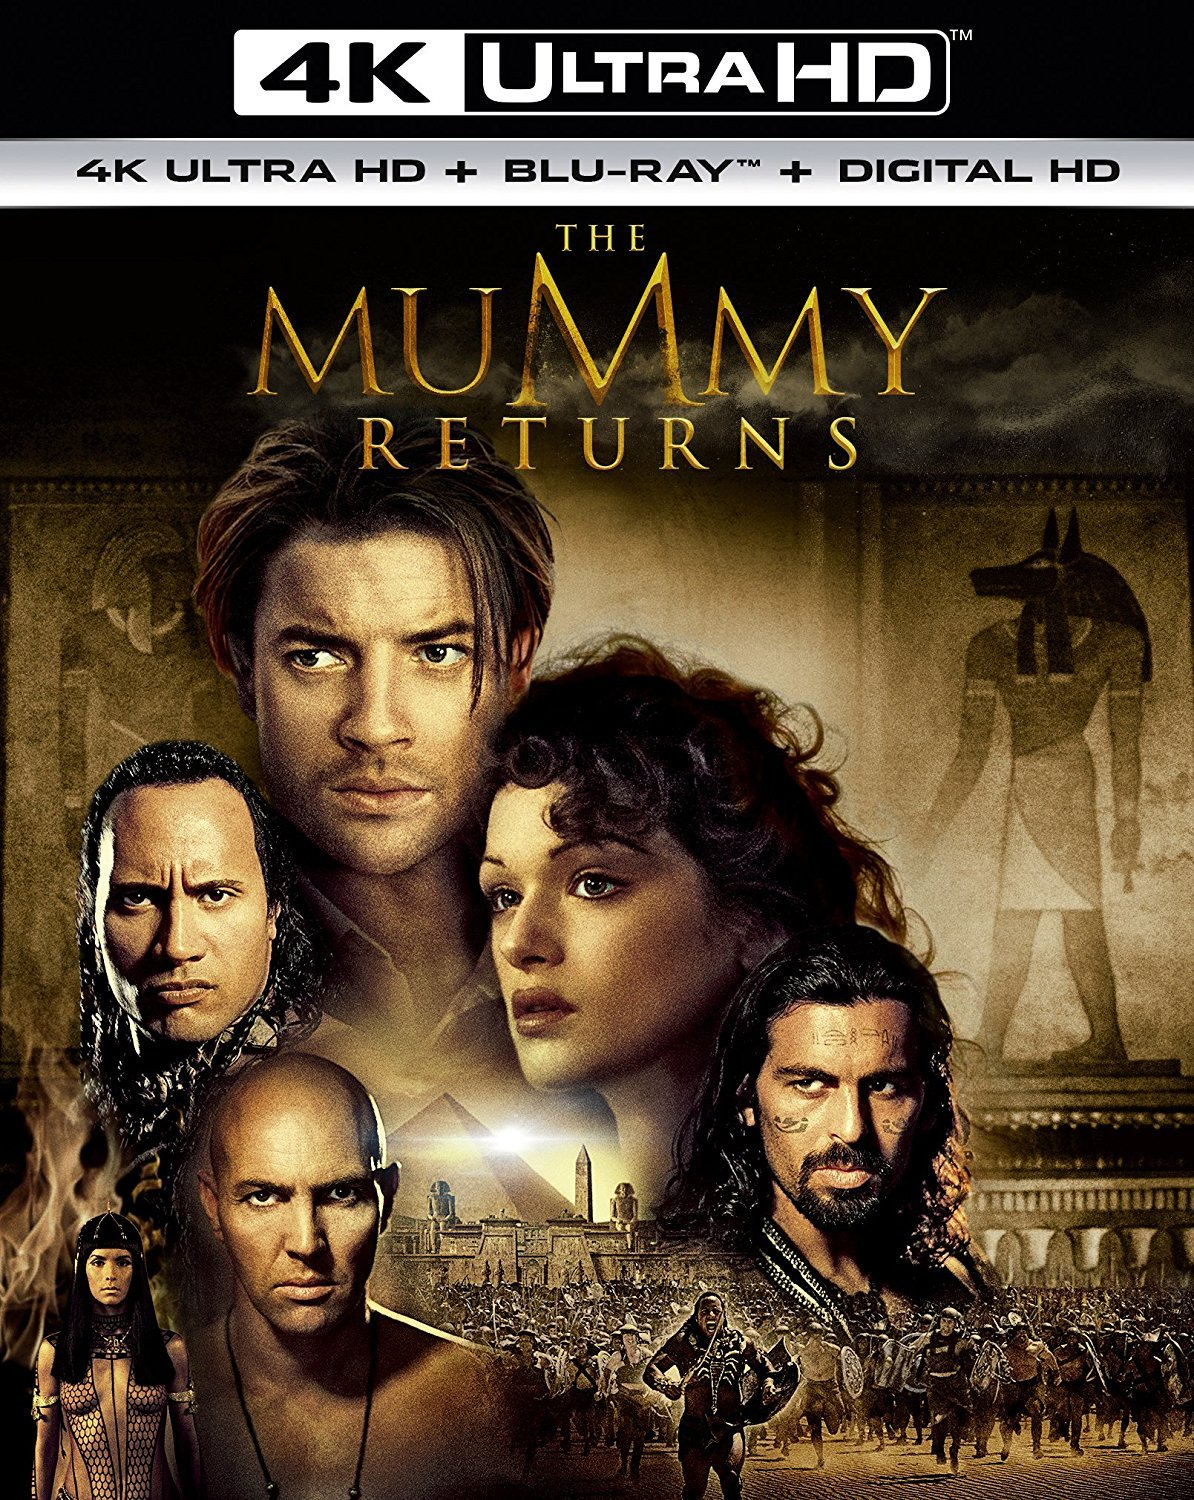 The Mummy 1999 Download In Hindi Mp4 Movie